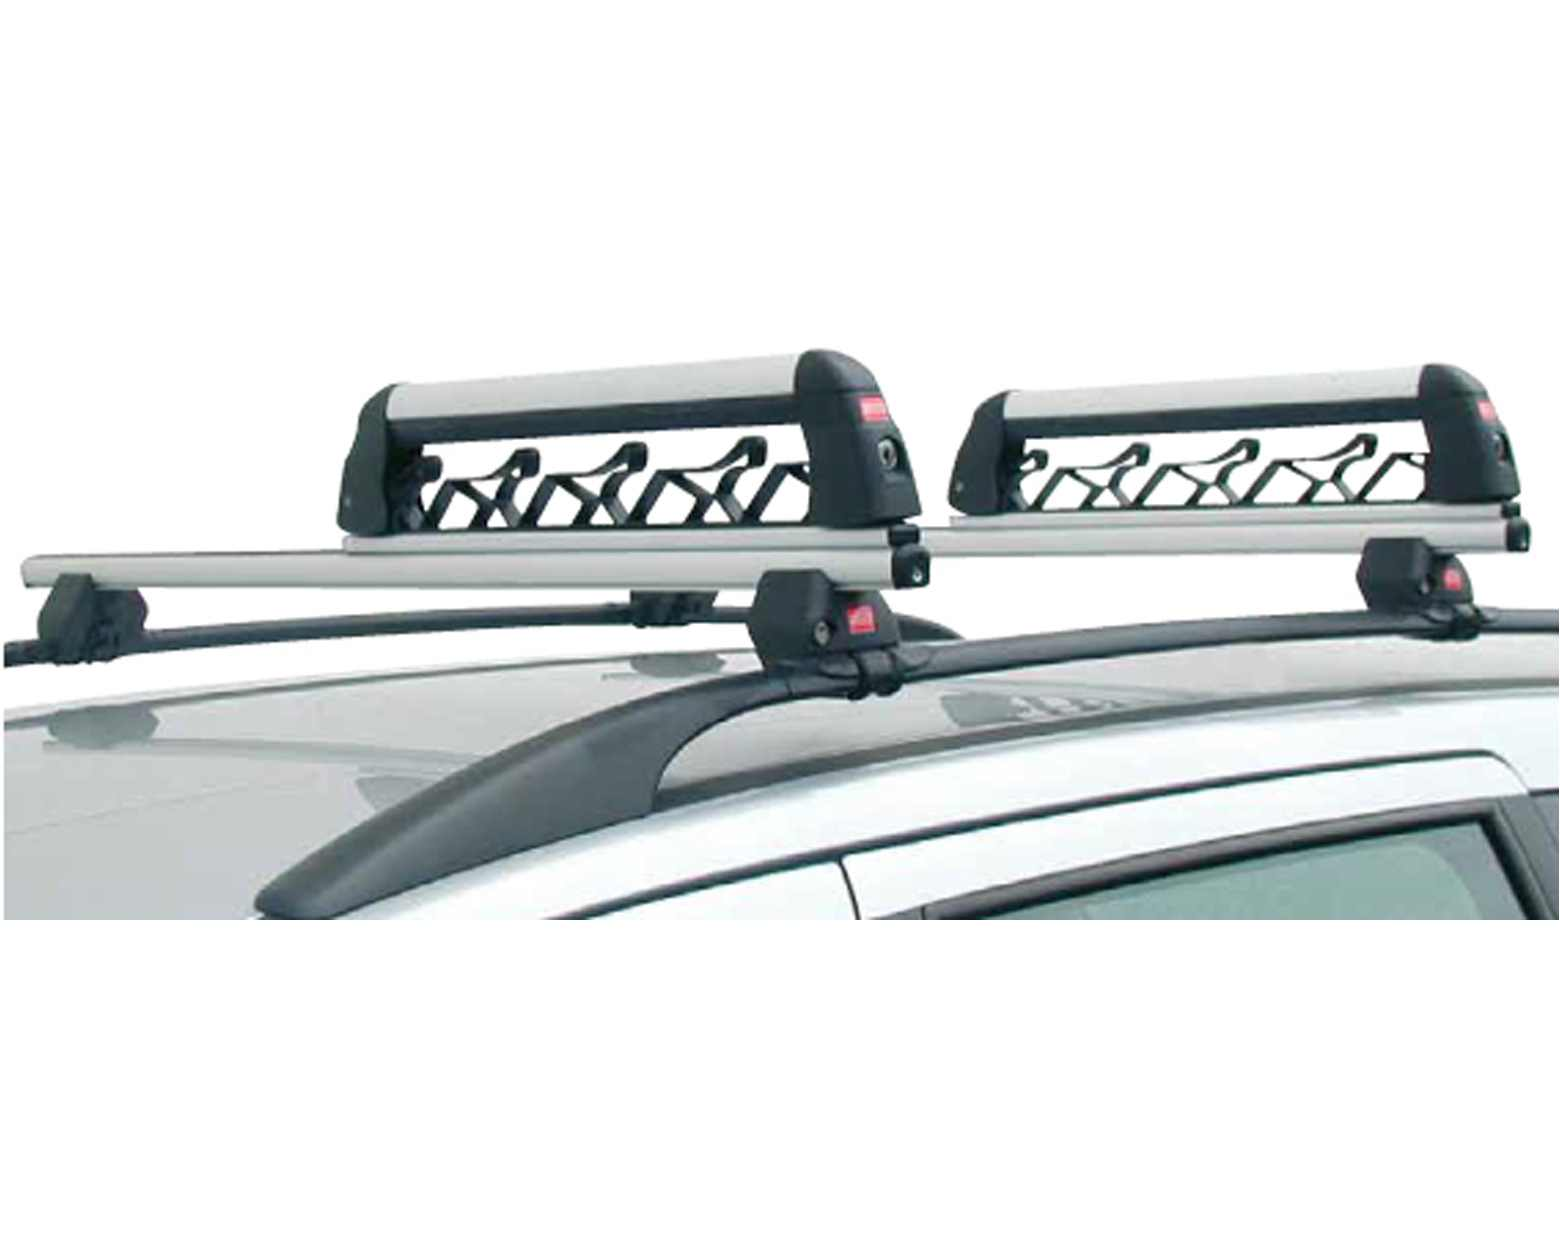 ski racks on a car roof